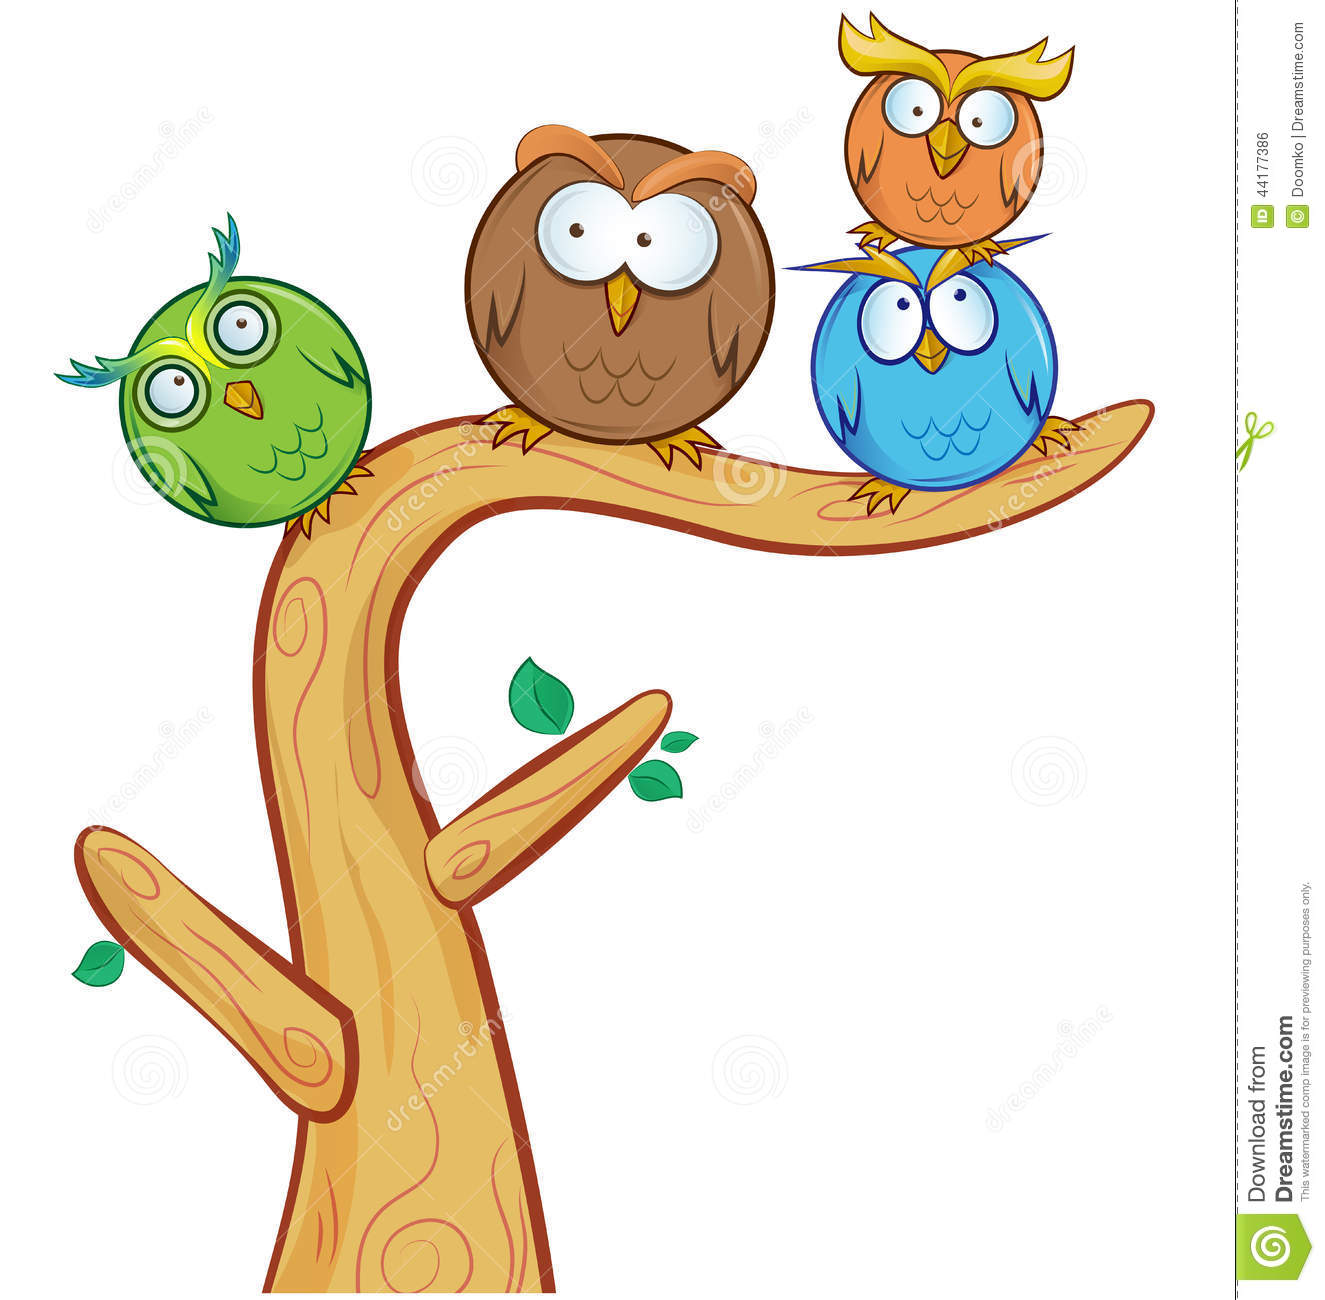 funny cartoon owl royalty free stock image image 31905846